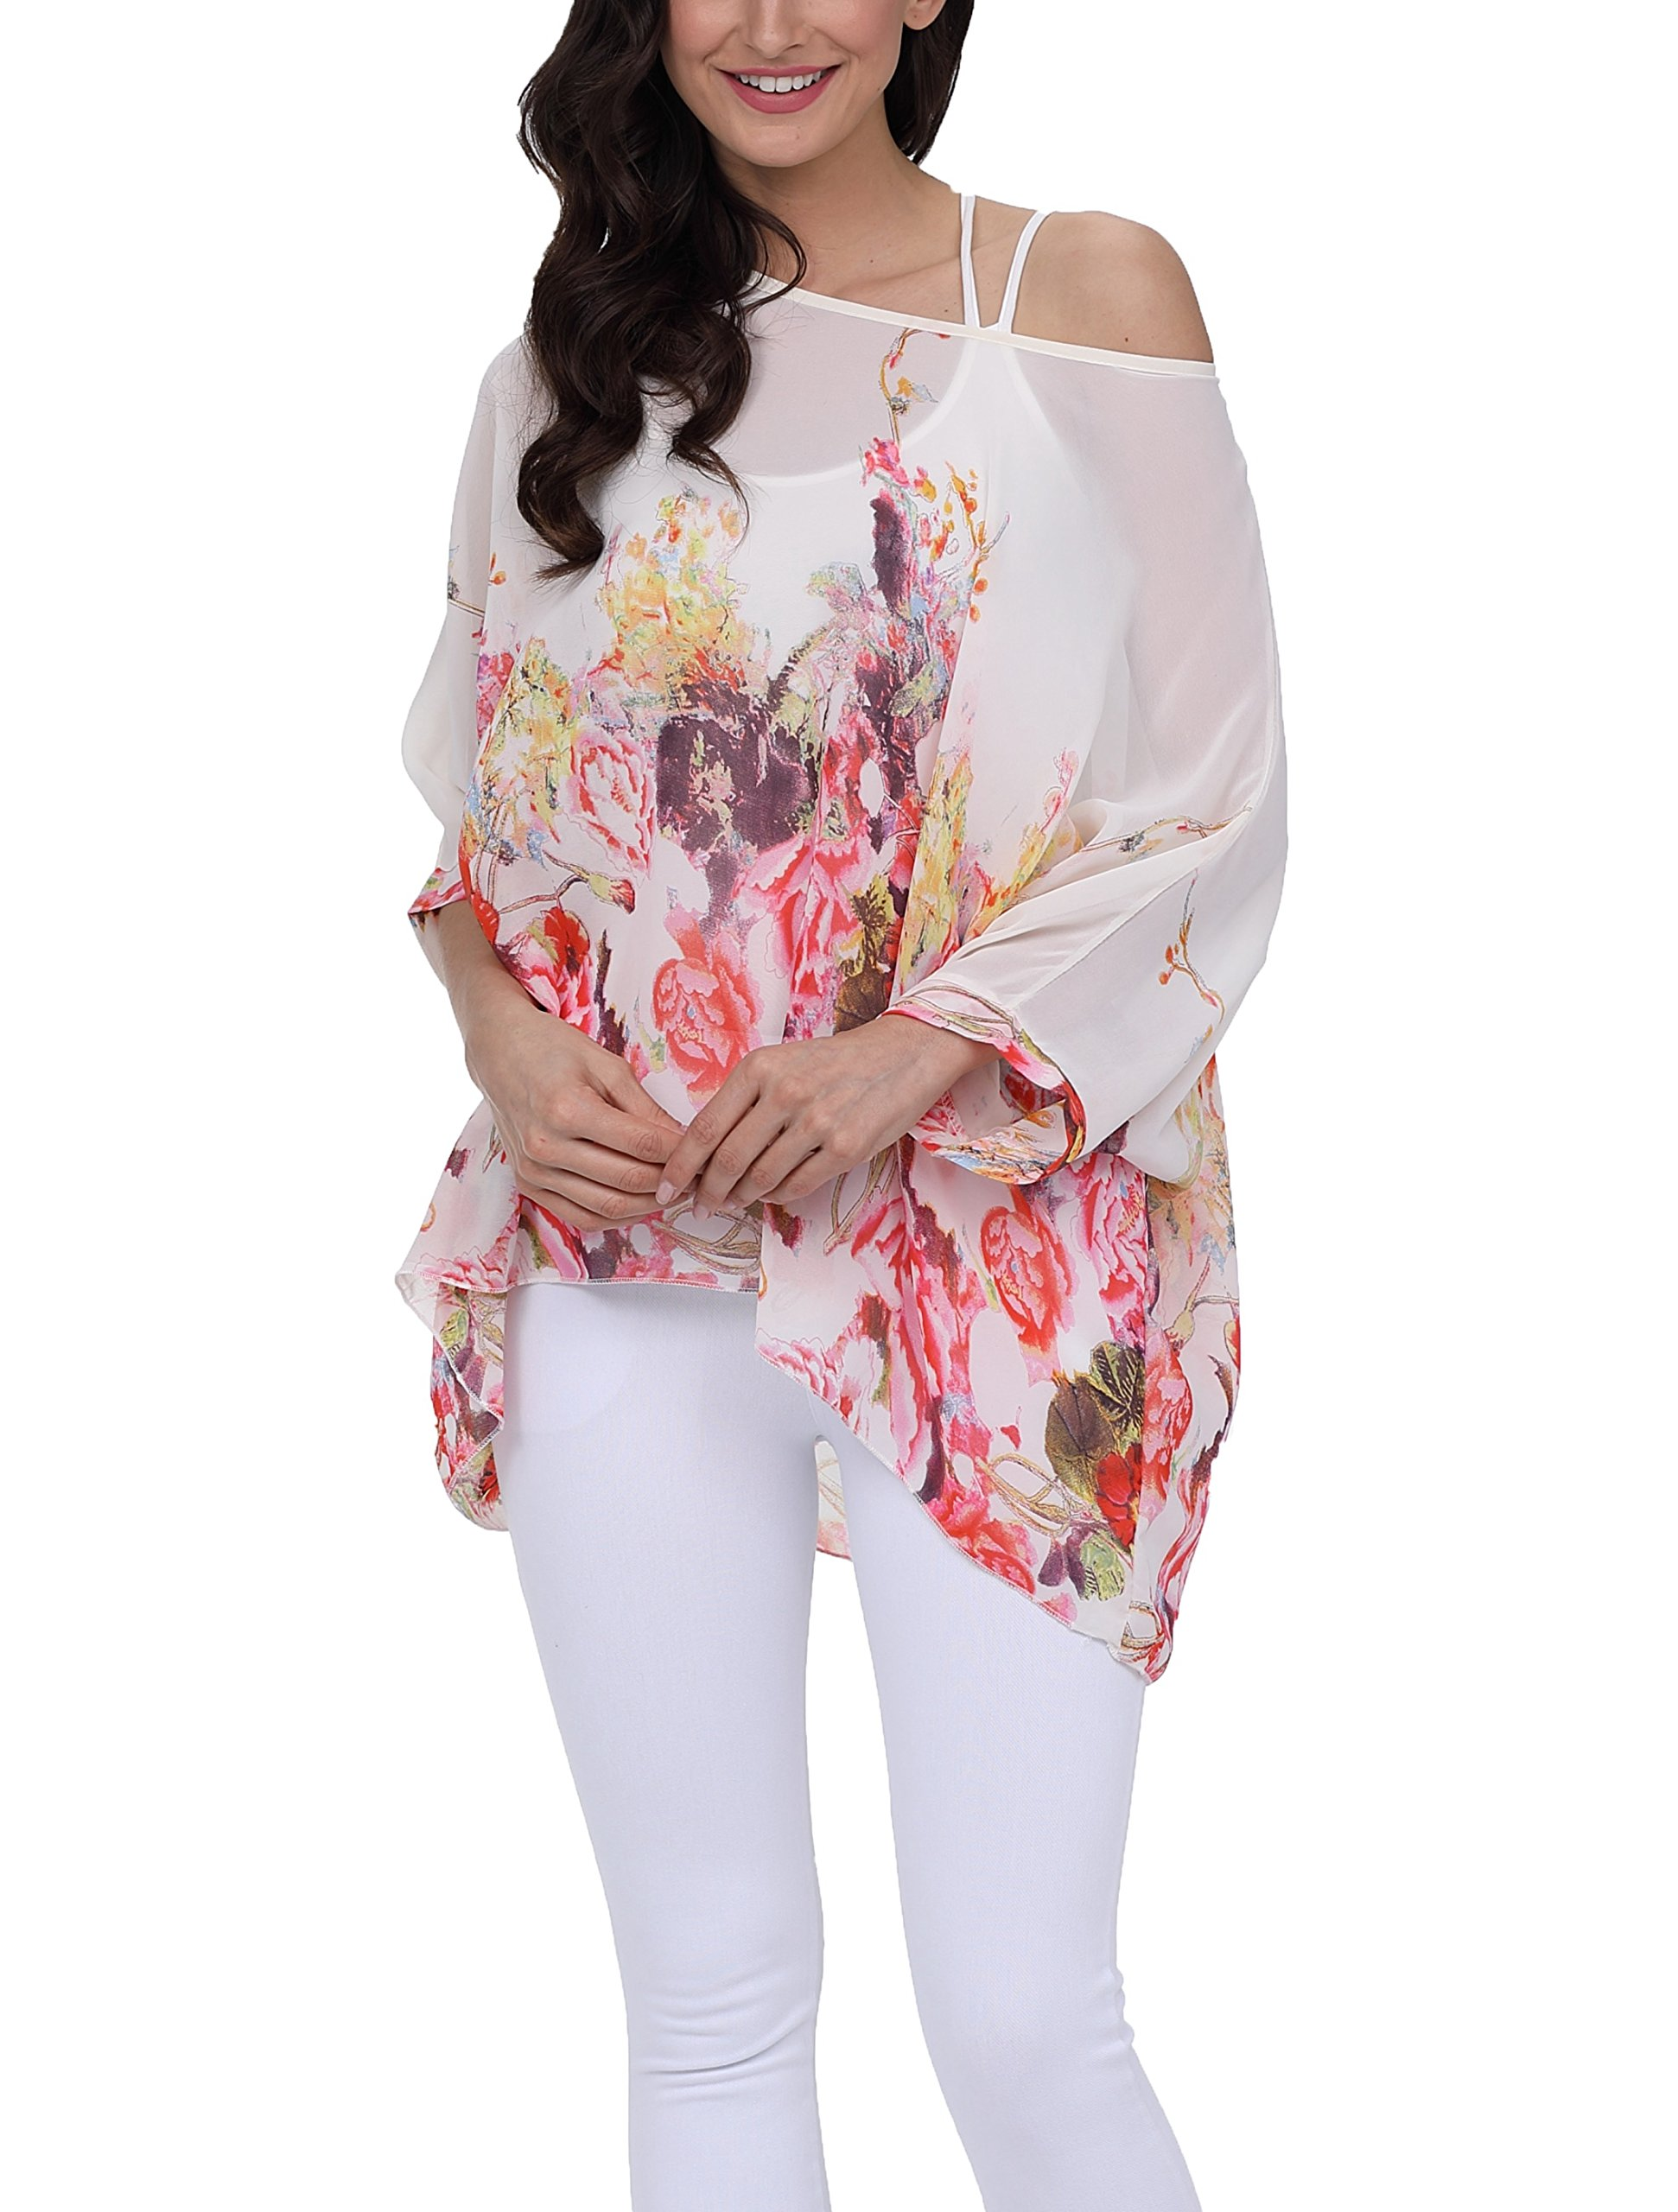 iNewbetter Womens Floral Batwing Sleeve Chiffon Beach Loose Blouse Tunic Tops PB291